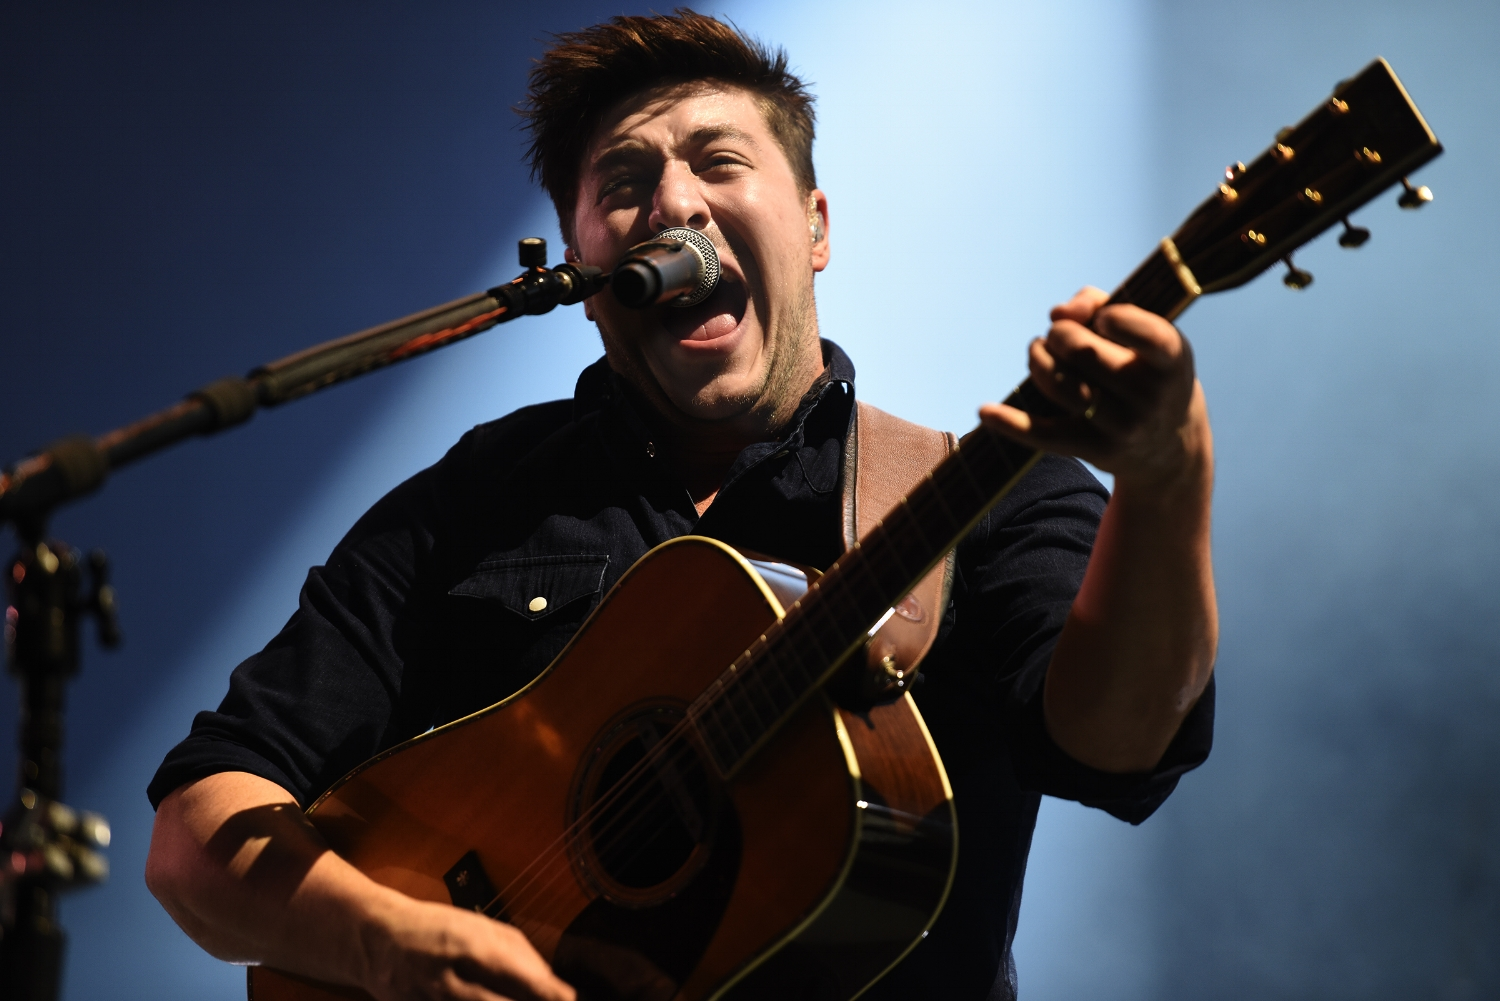 Mumford & Sons wrap-up the Okeechobee Music Festival with a moving performance in Okeechobee, Florida on Sunday, March 6, 2016. (Daniel Owen / The Palm Beach Post)